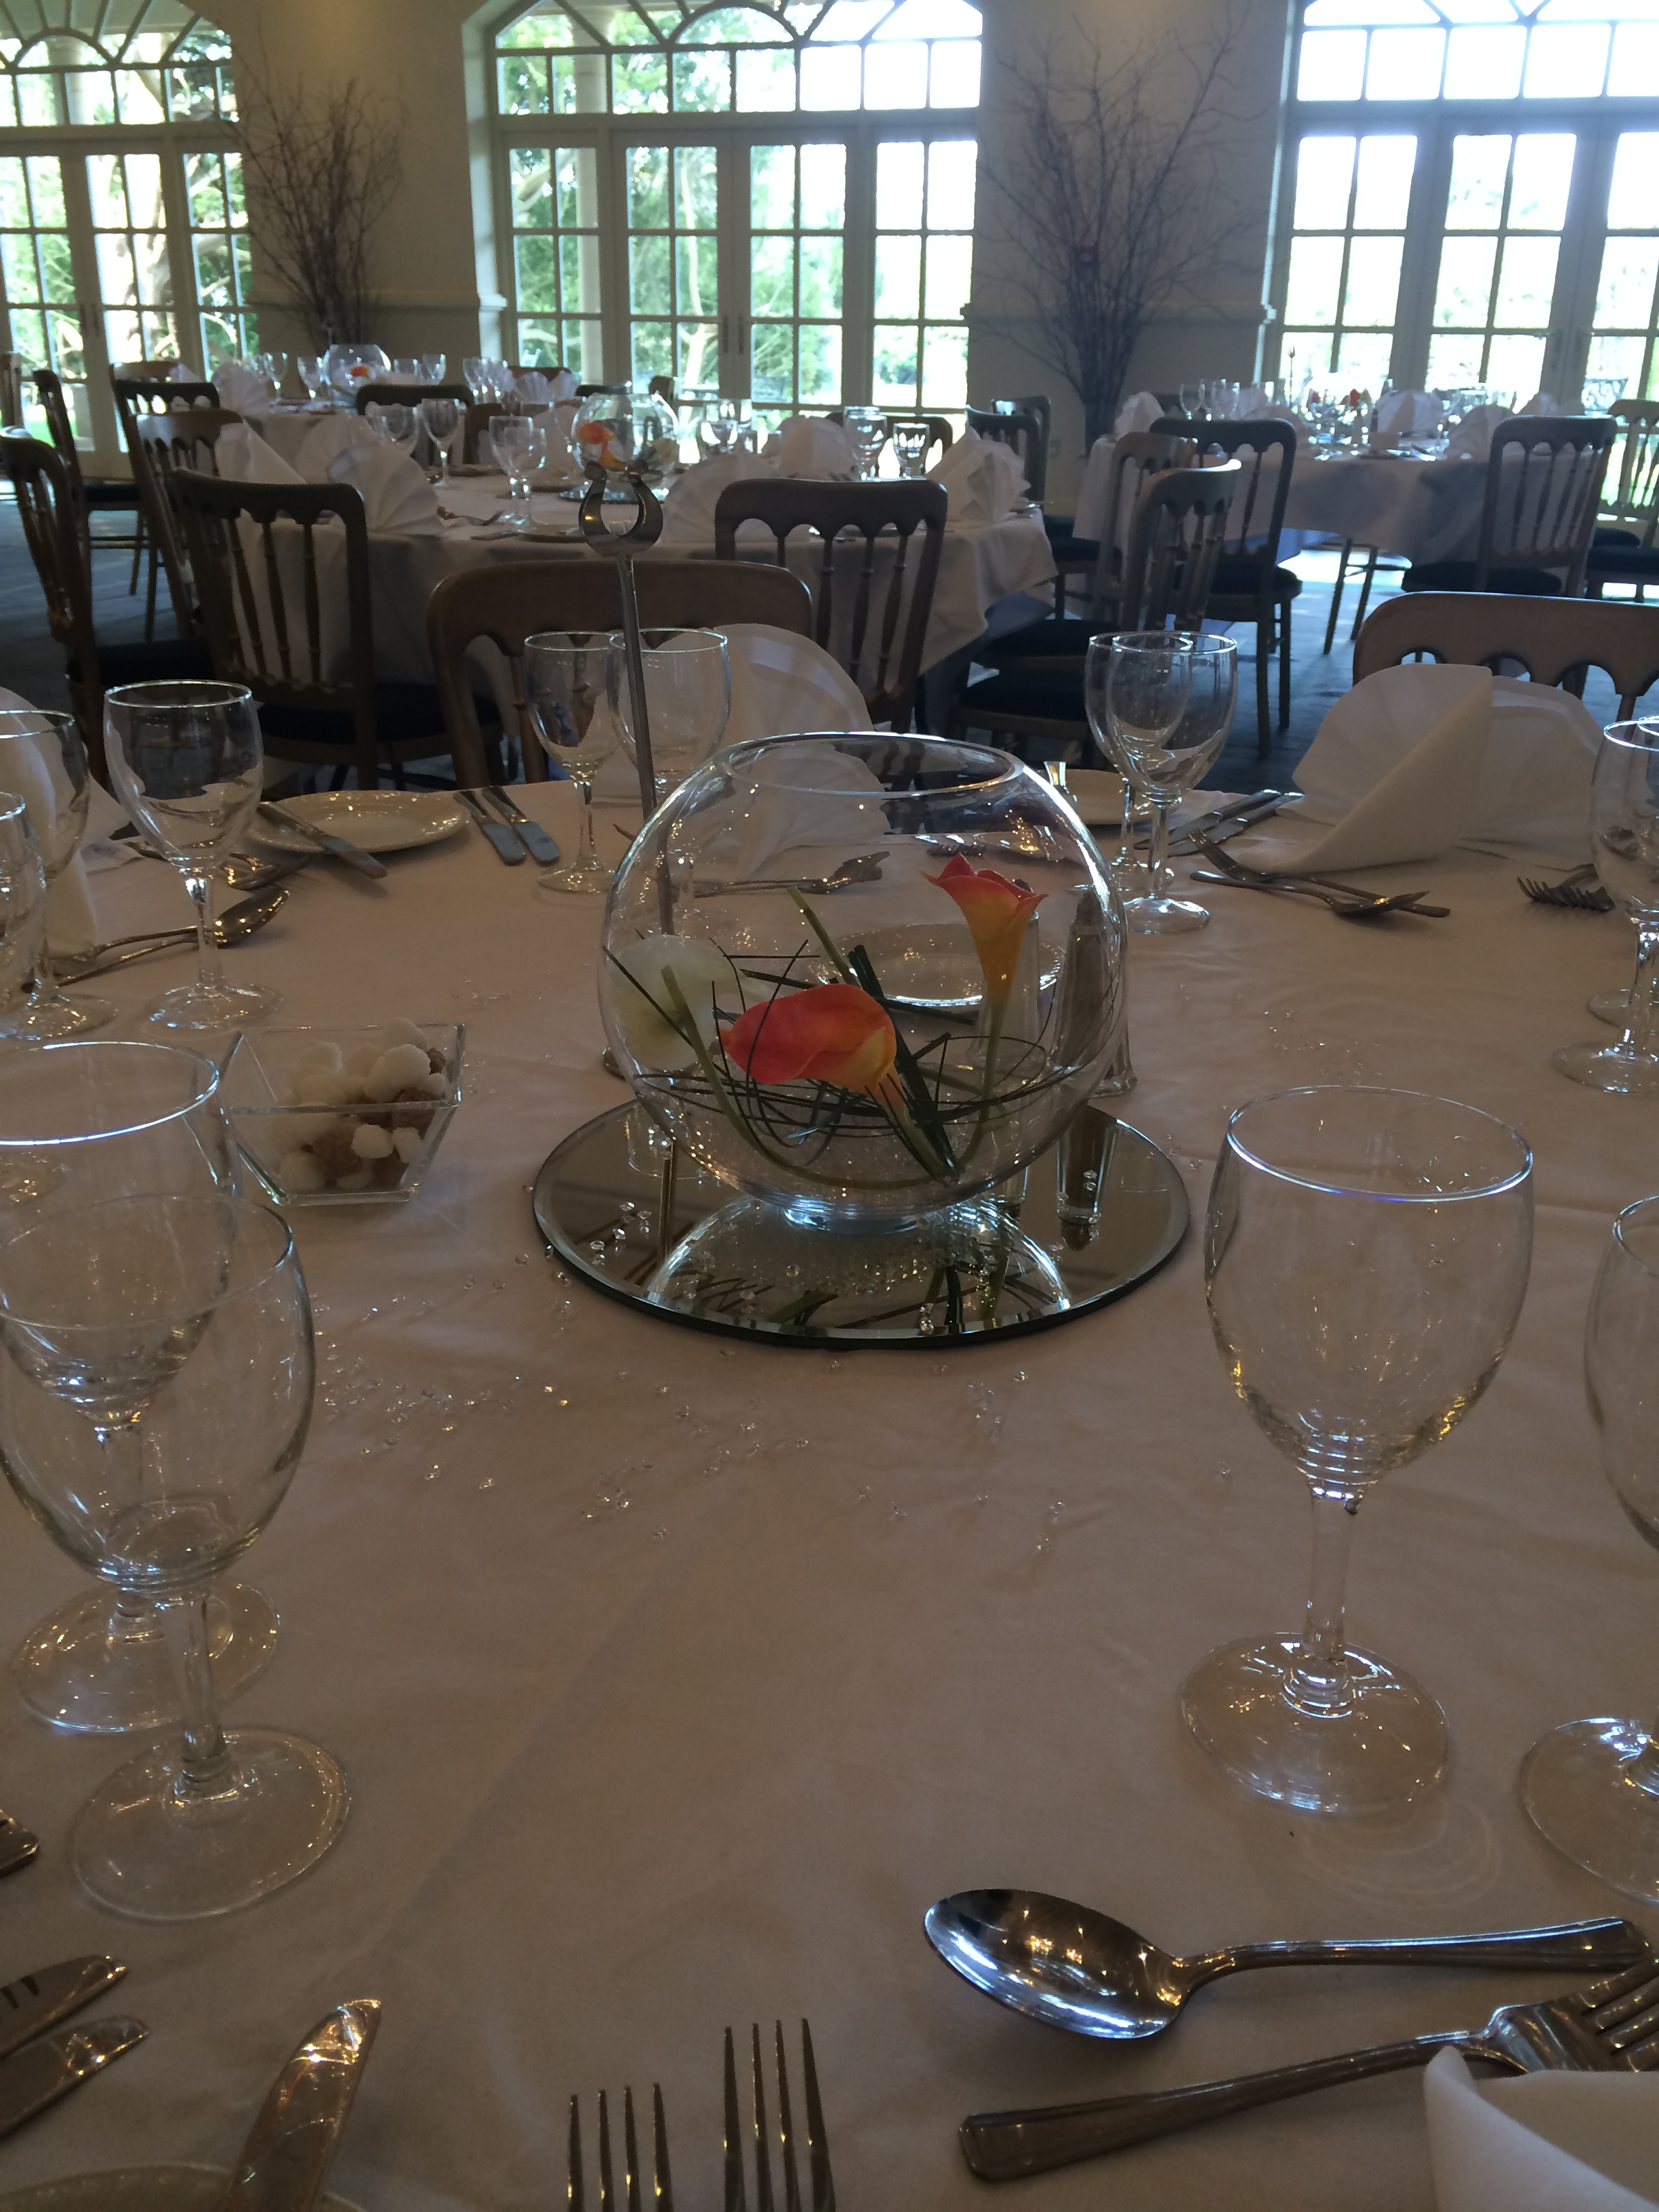 Guest Table Display - Gold Fish Bowl On A Mirror Plate, With Orange & Ivory Calla Lilies